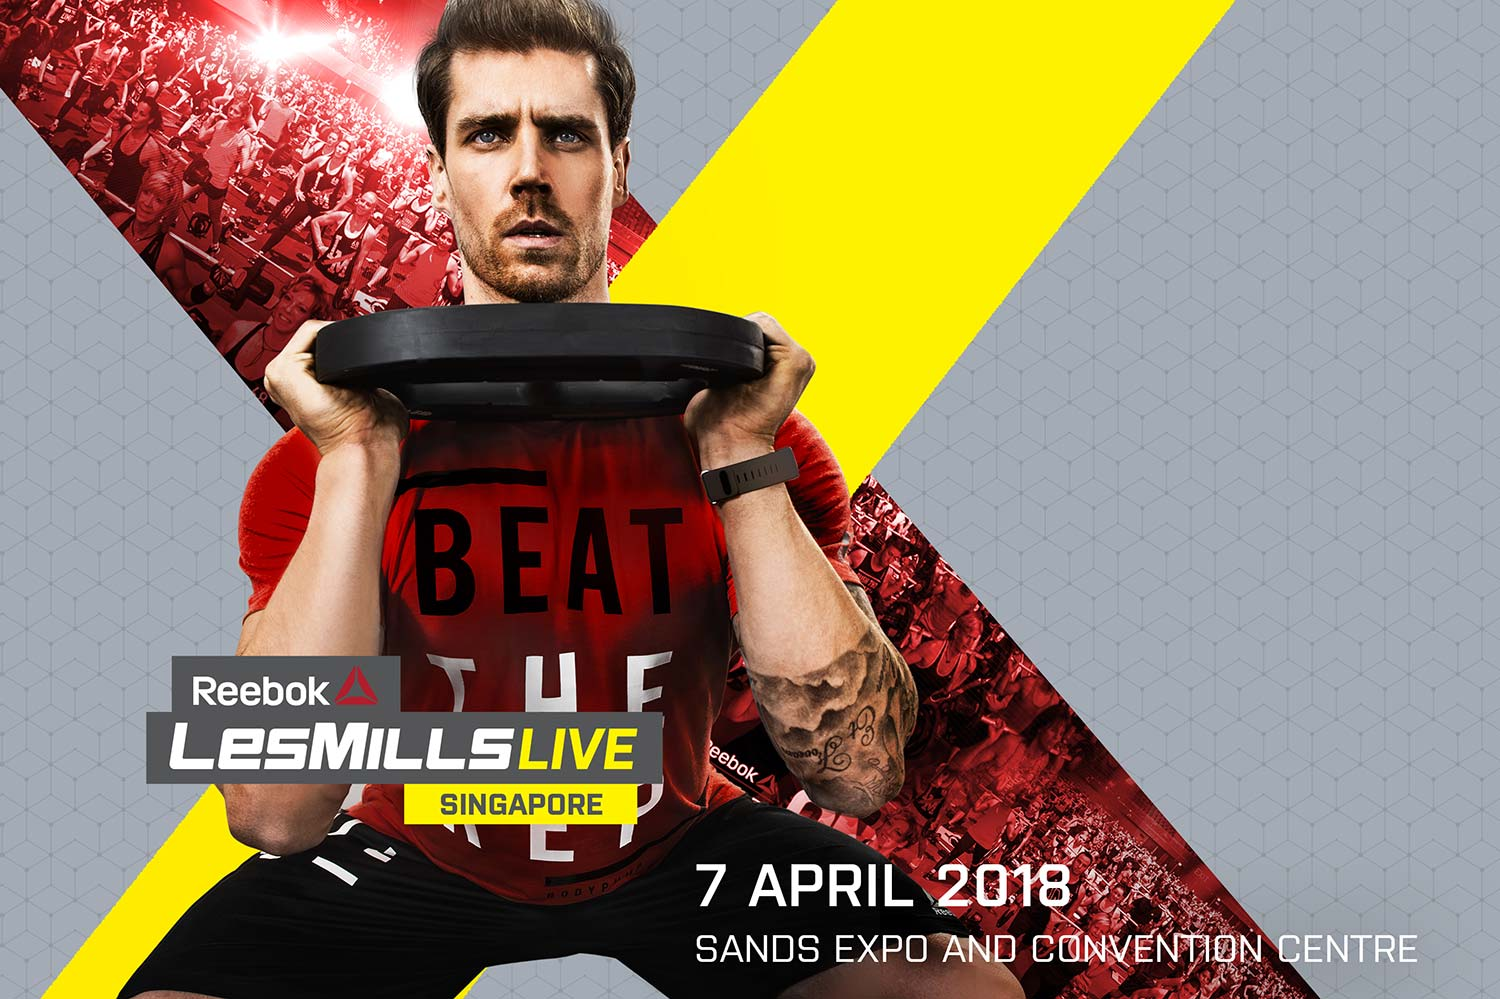 Reebok LES MILLS LIVE in Singapore for the First Time